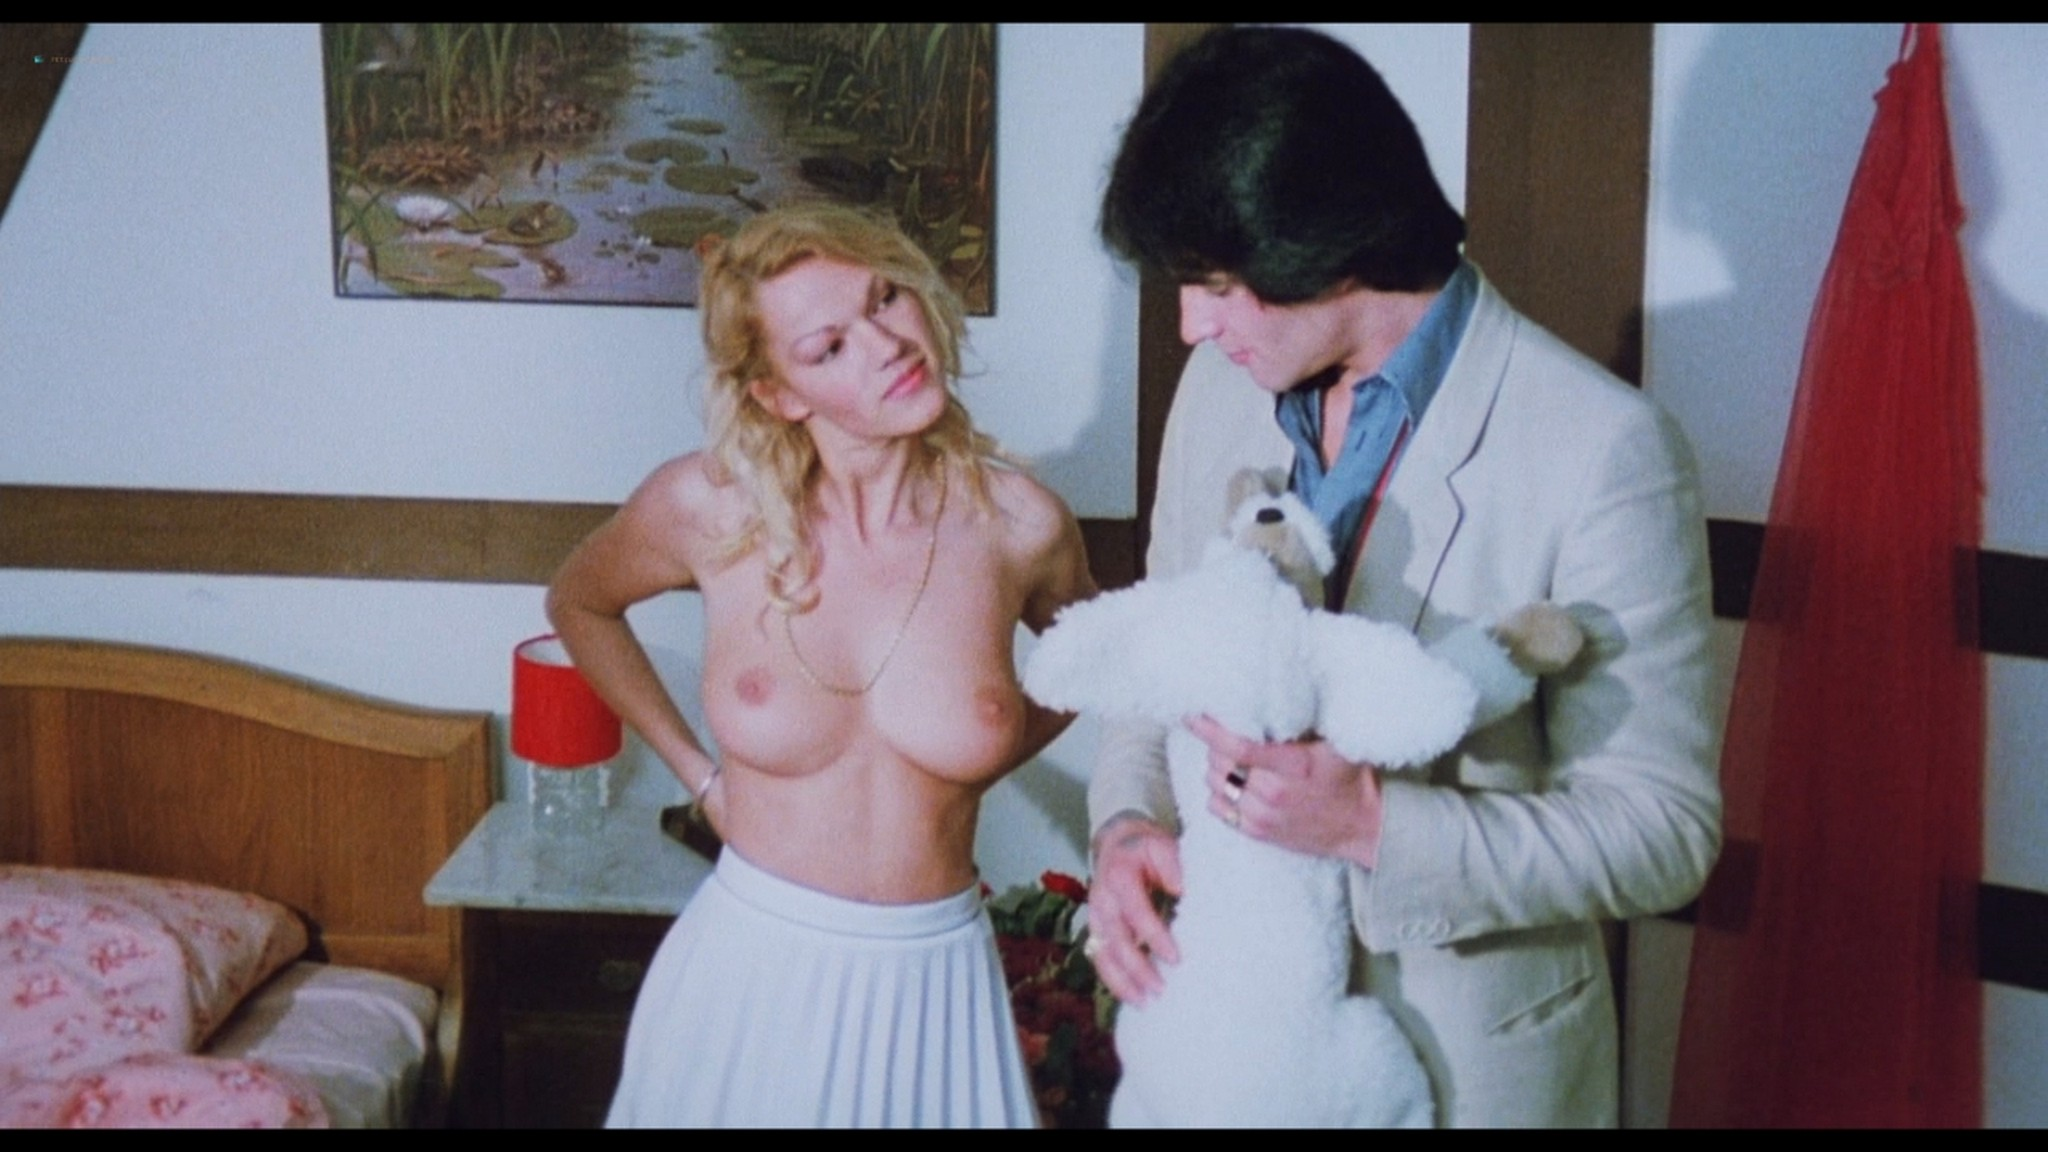 Brigitte Lahaie nude sex Elsa Maroussia and other lots of sex - Swedish Gas Pump Girls (1980) HD 720p BluRay (7)